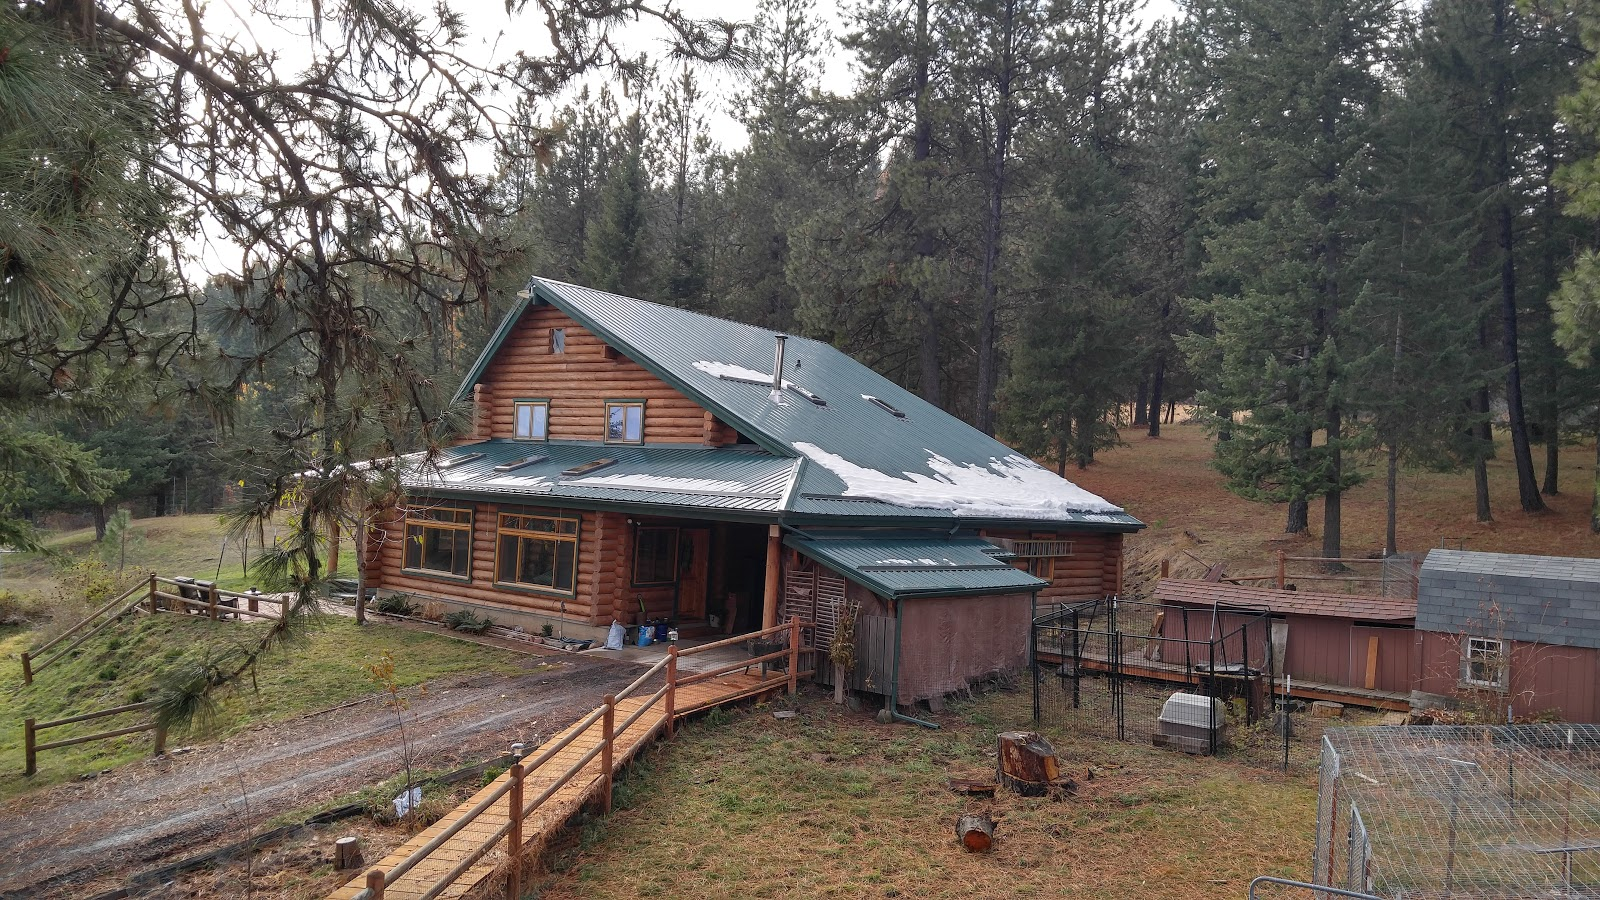 Day 4 – House Hunting in Idaho